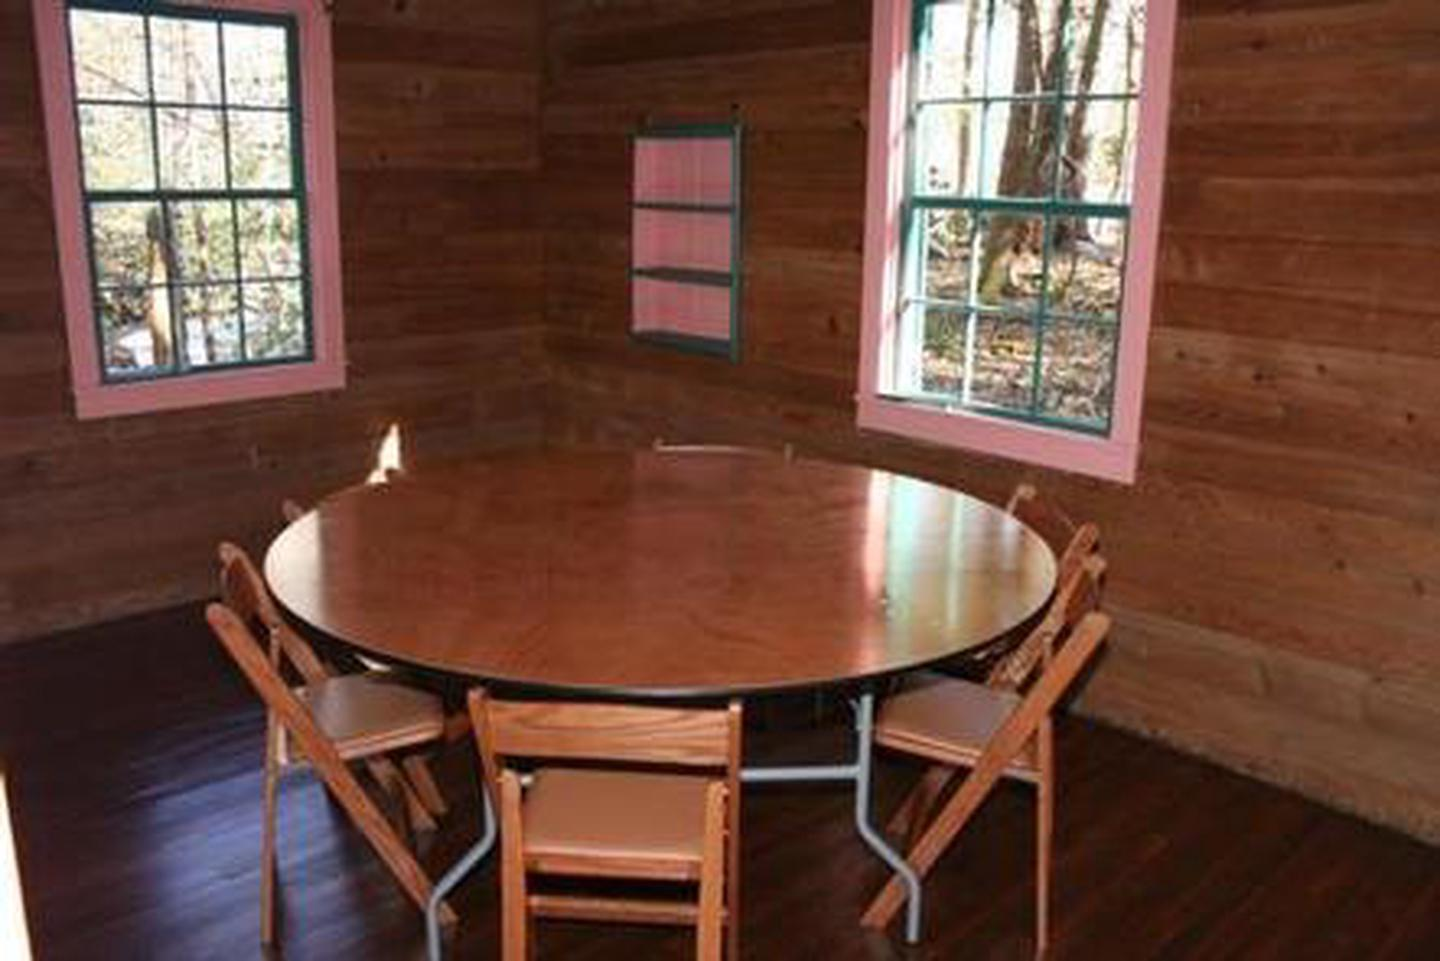 Small room located in Spence CabinSmall room showing table and chairs with window views